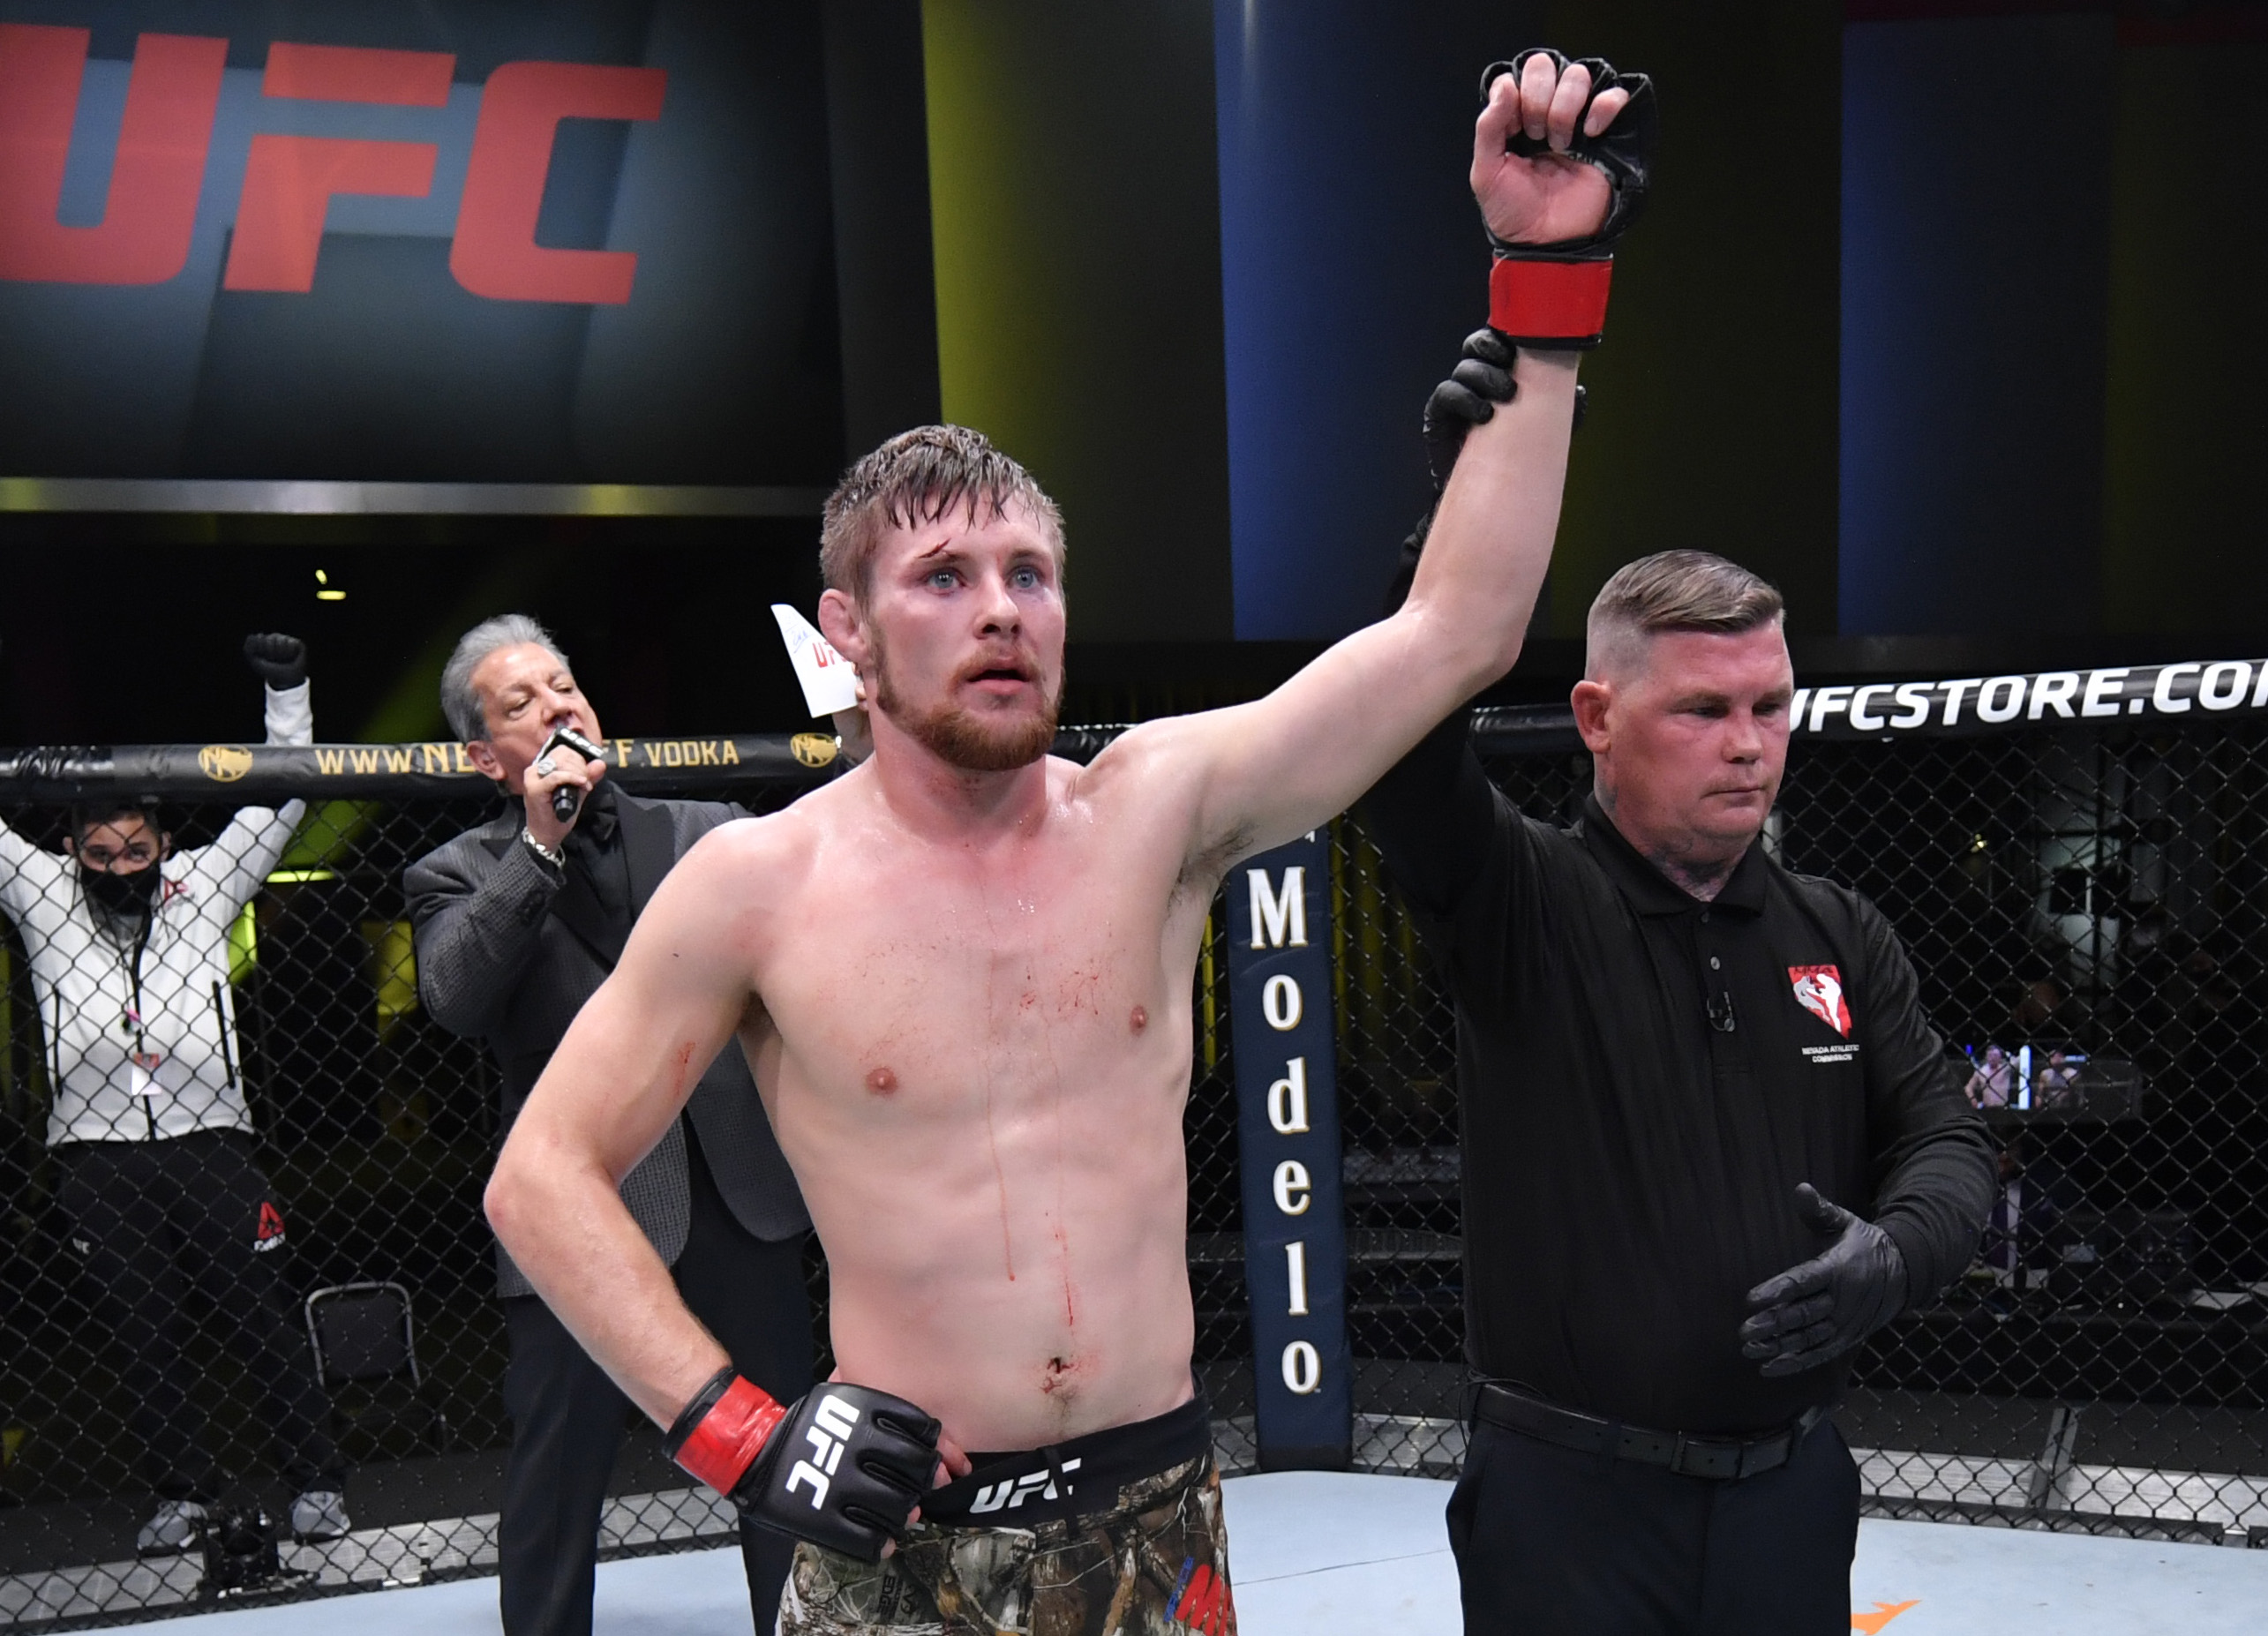 Bryce Mitchell reacts after his victory over Andre Fili in a featherweight bout during a 2020 UFC Fight Night